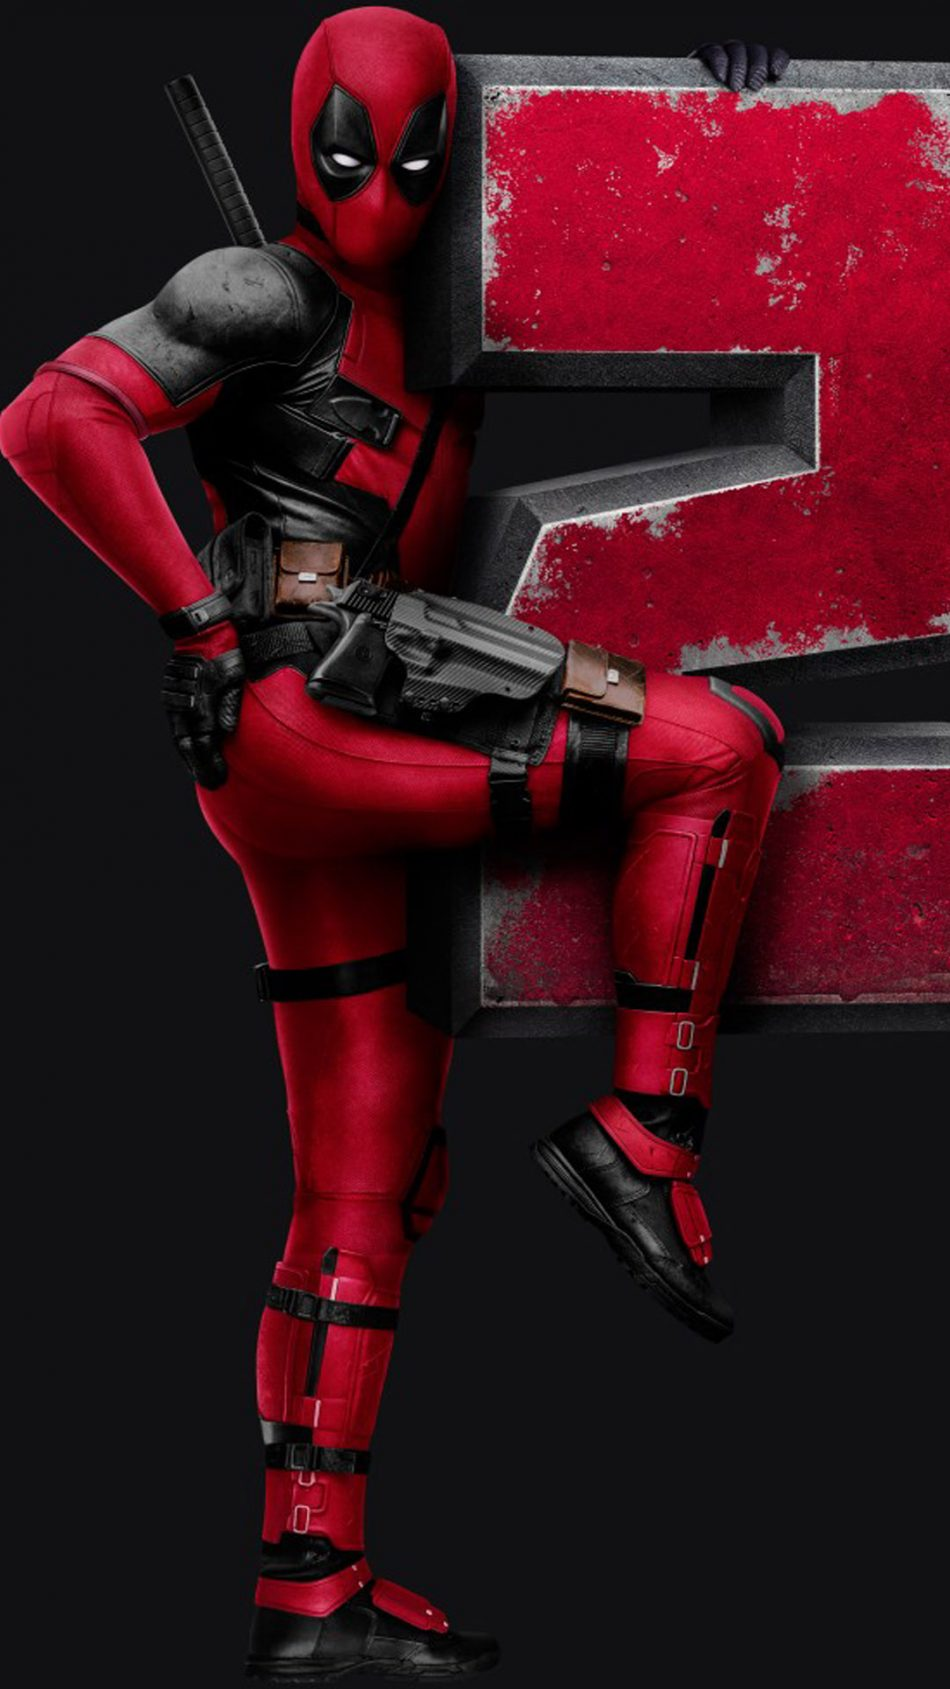 Download Deadpool 2 Poster Free Pure 4k Ultra Hd Mobile Wallpaper